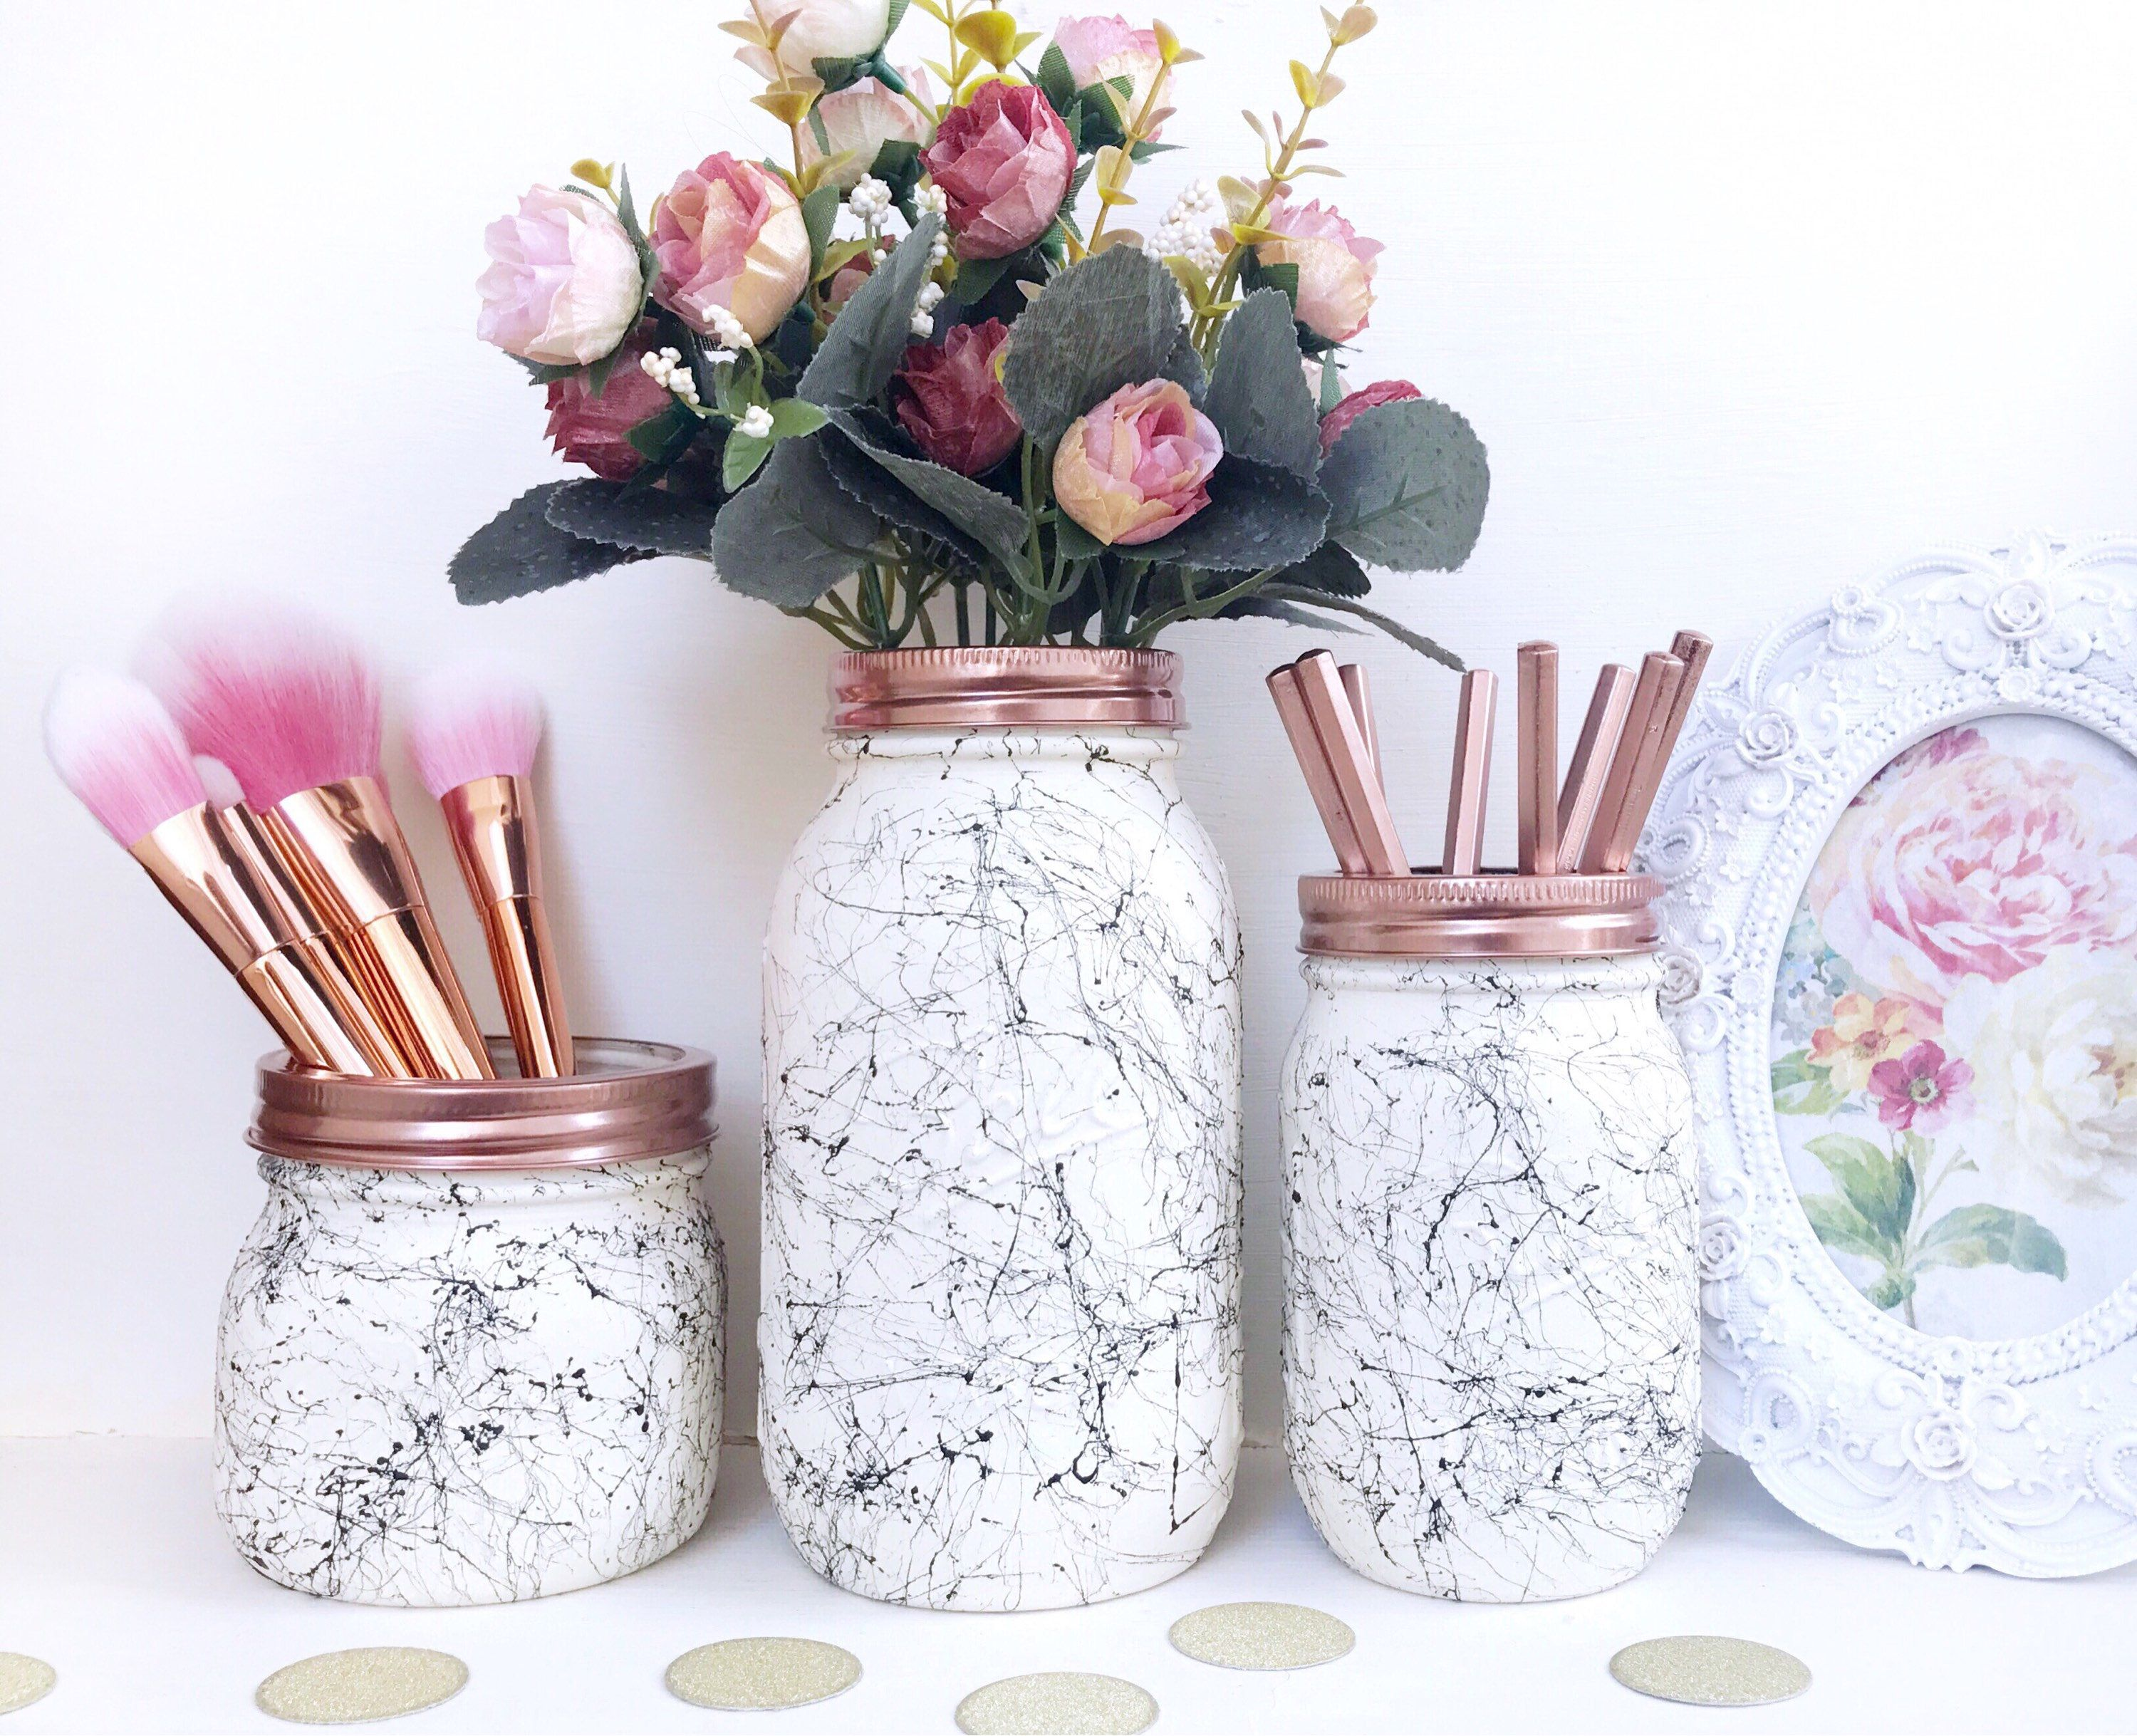 Pin by Caylah Hall on DIY Marble desk, Desk accessories